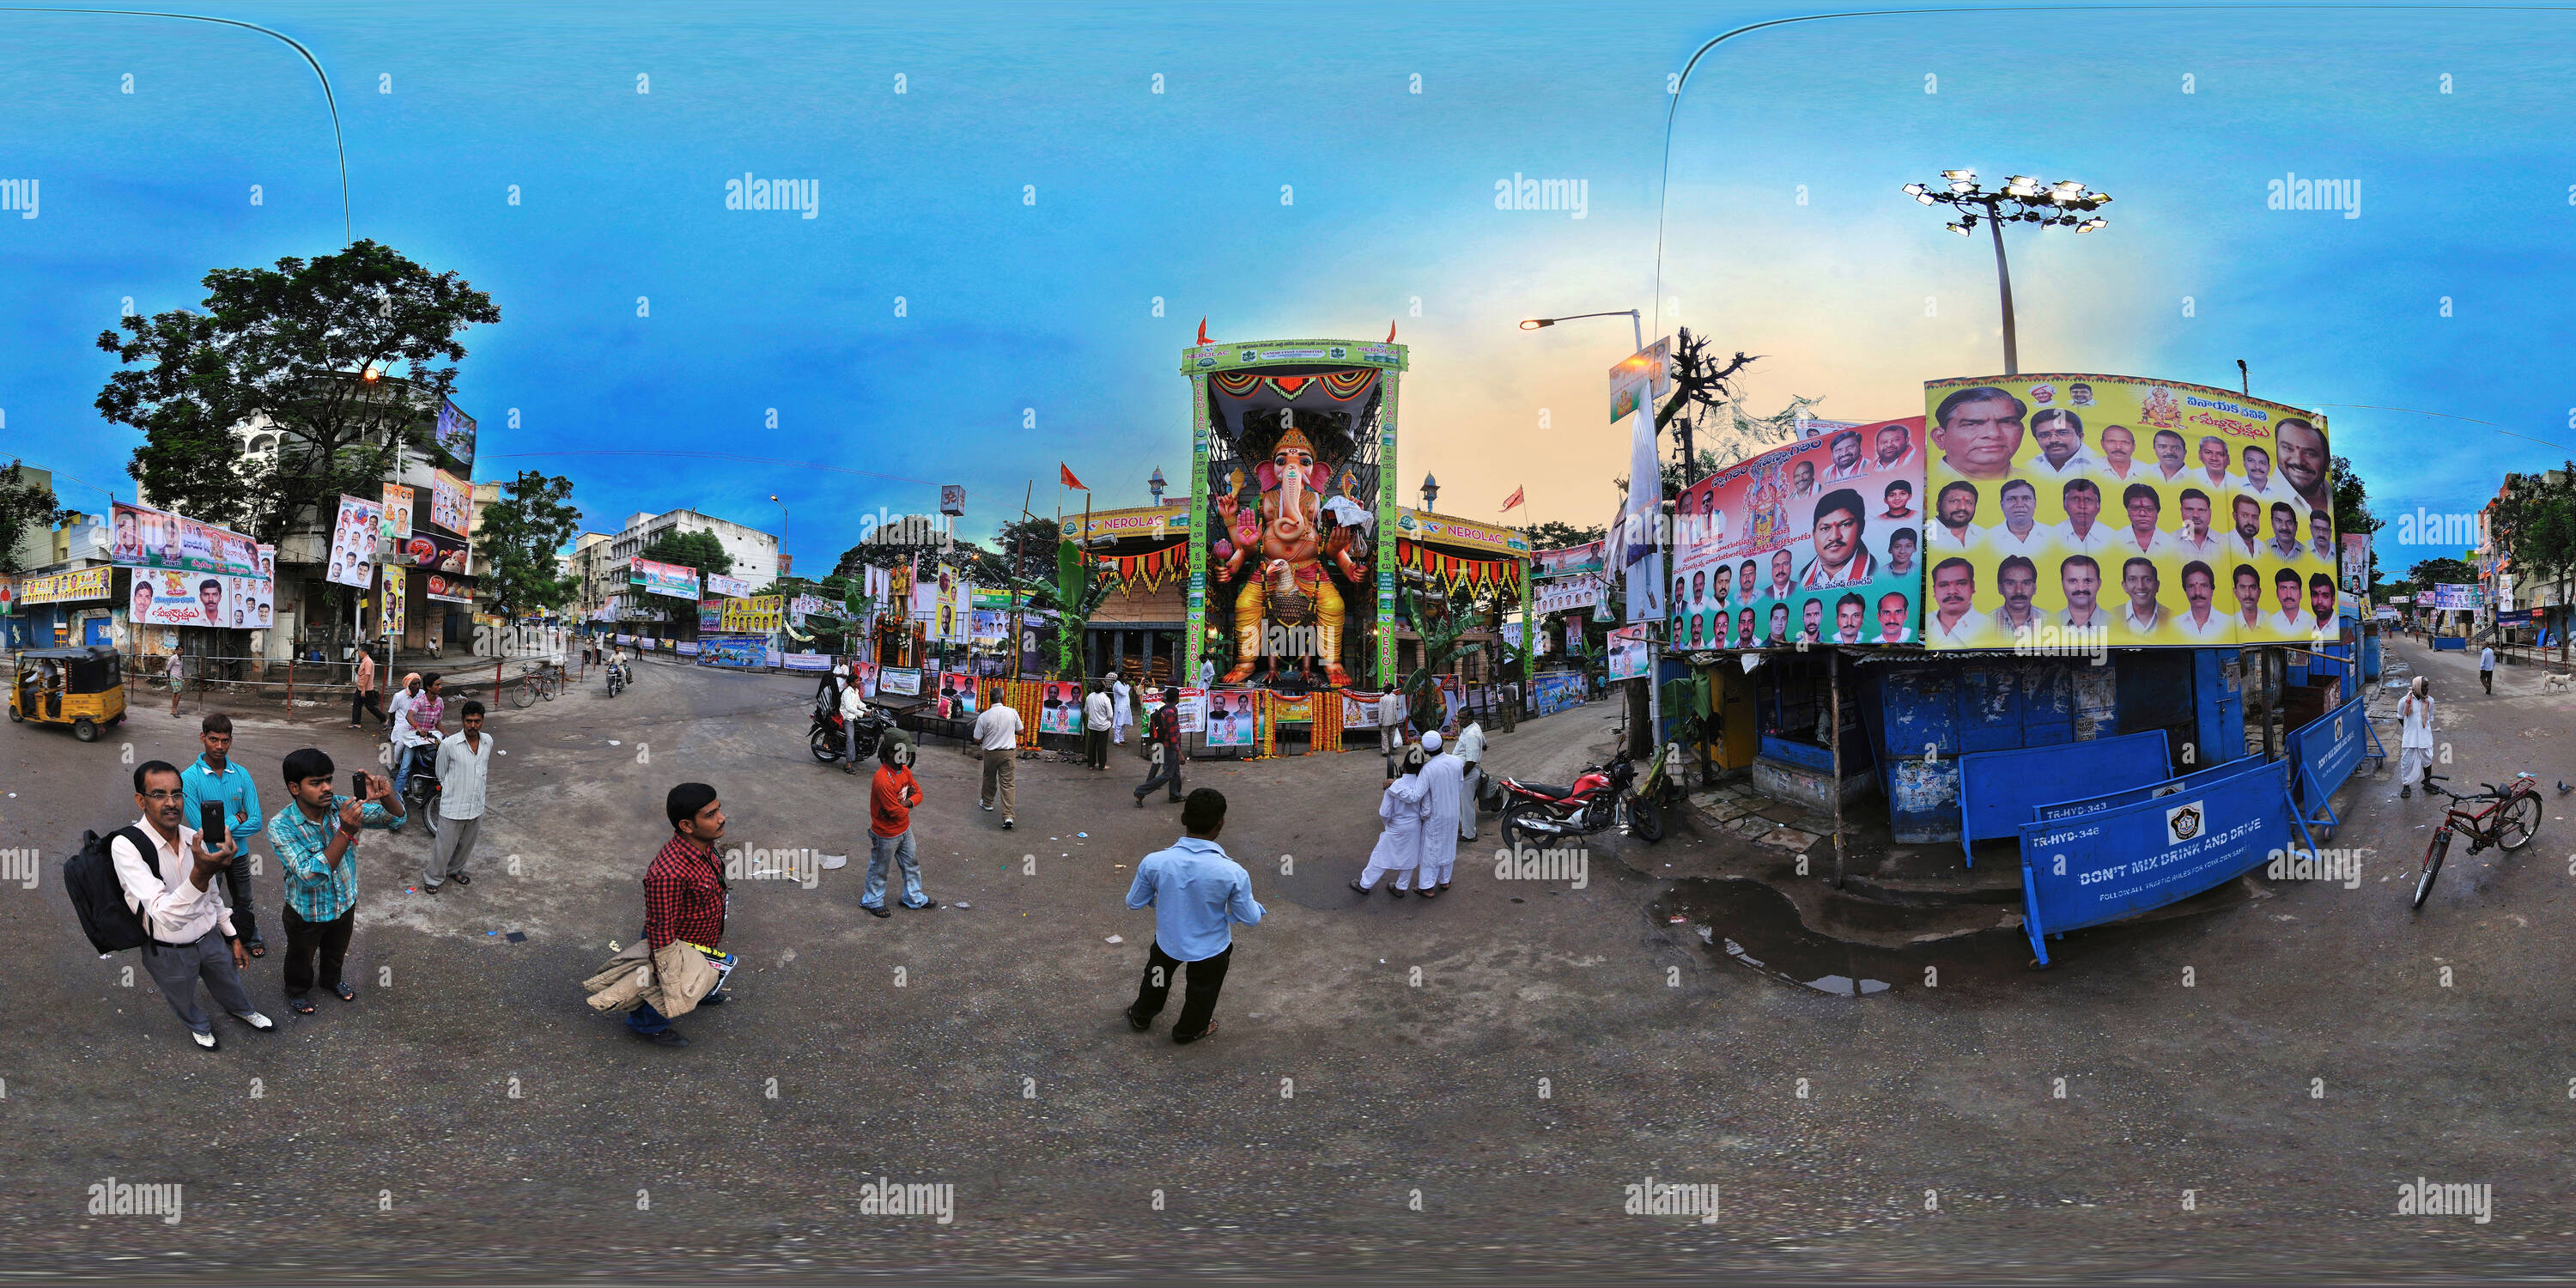 360 degree panoramic view of 400 Years Hyderabad where Unity Lives in Diversity, Charminar as witness.